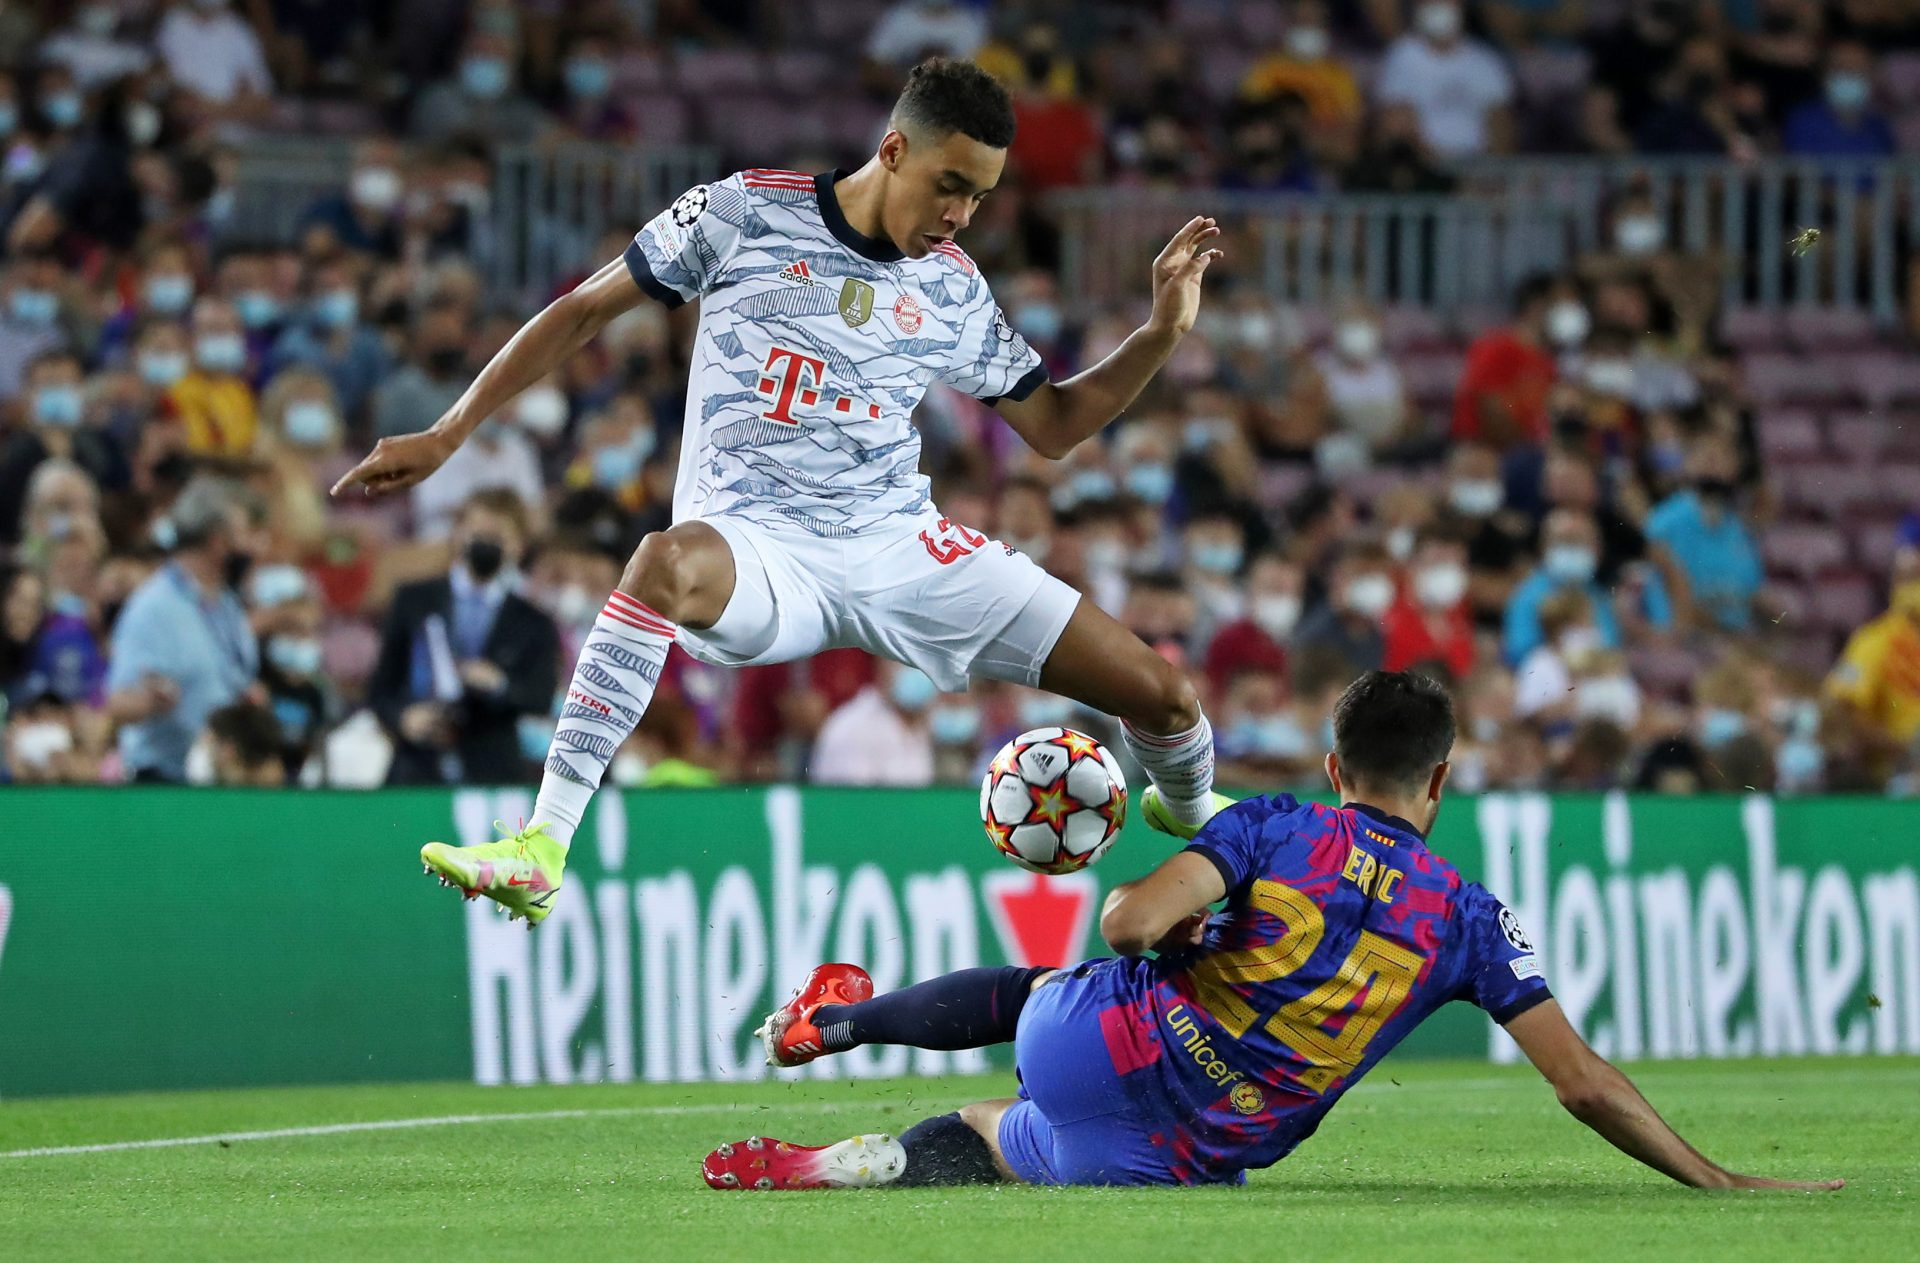 Jamal Musiala of Bayern Munich leaps over the challenge of Barcelona's Eric Garcia during their 3-0 win at Camp Nou in the Champions League opener Photo: Urbanandsport/ NurPhoto via Getty Images